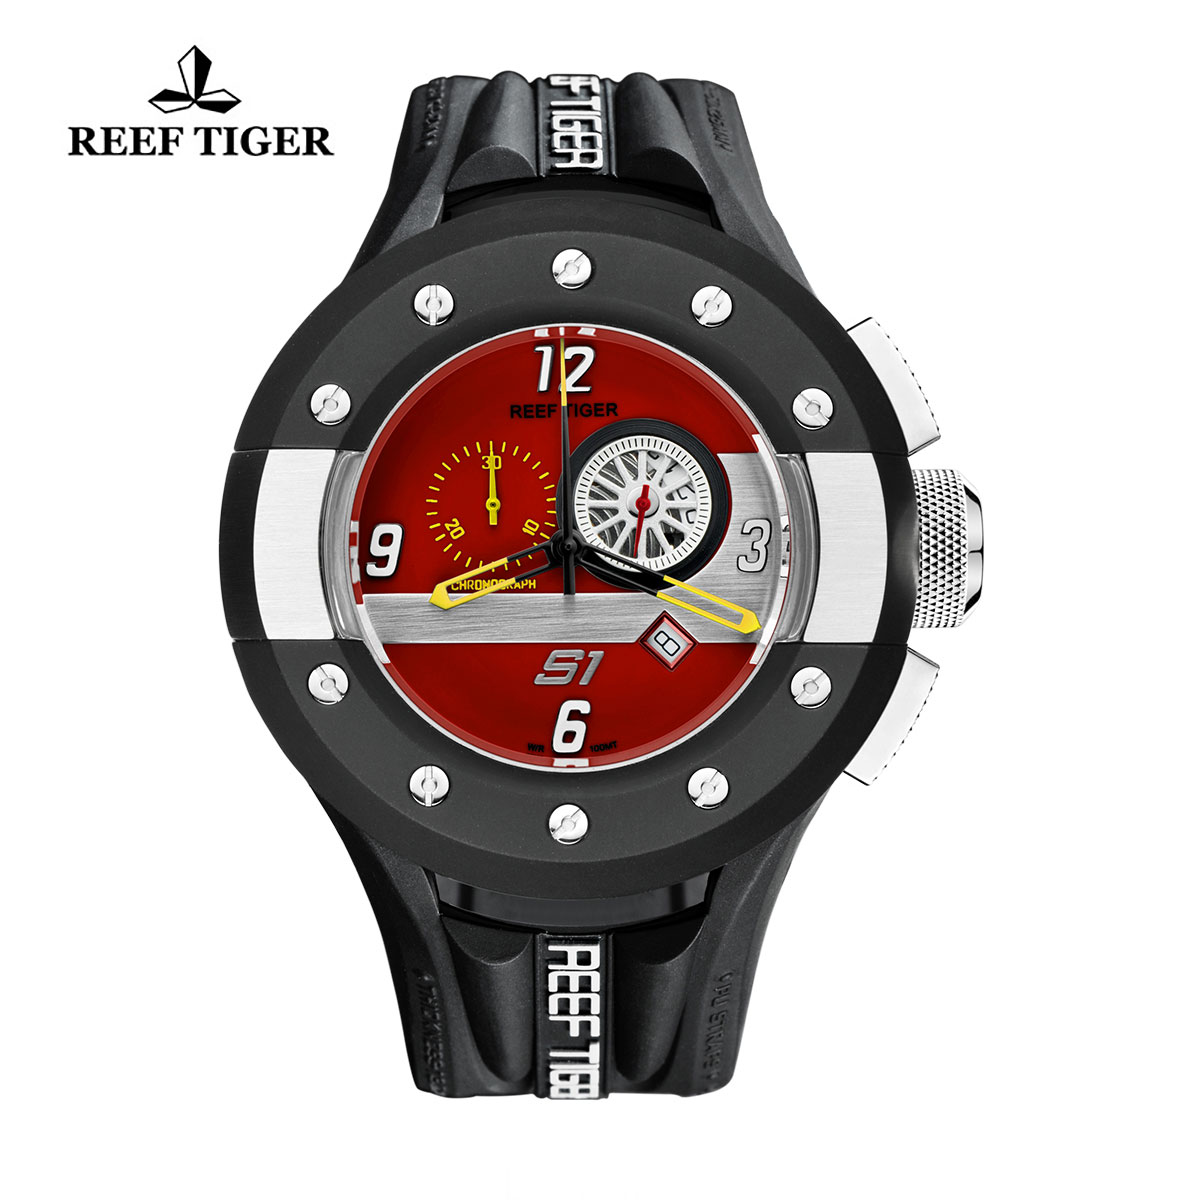 Reef Tiger Rally S1 Casual Watch Stainless Steel Rubber Strap Red Dashboard Dial Quartz Watch RGA3027-BRBW